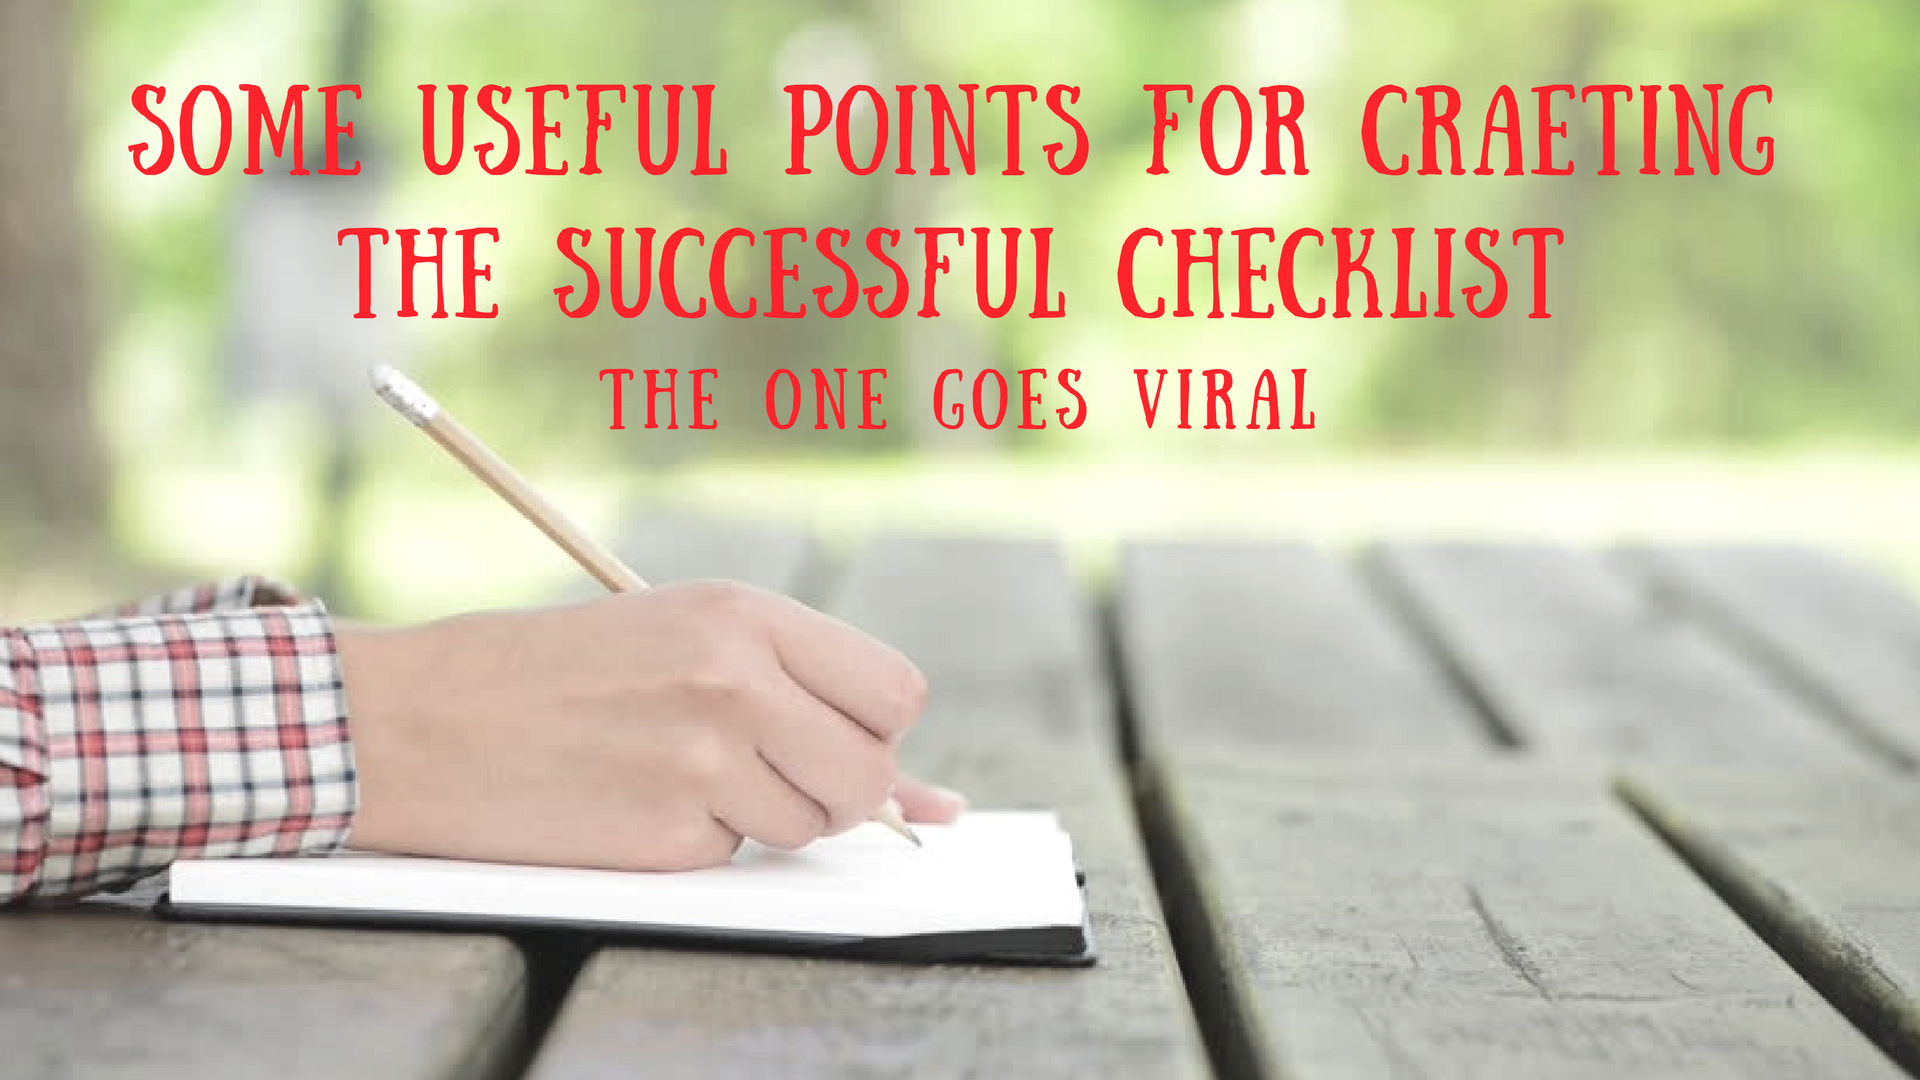 points about checklist